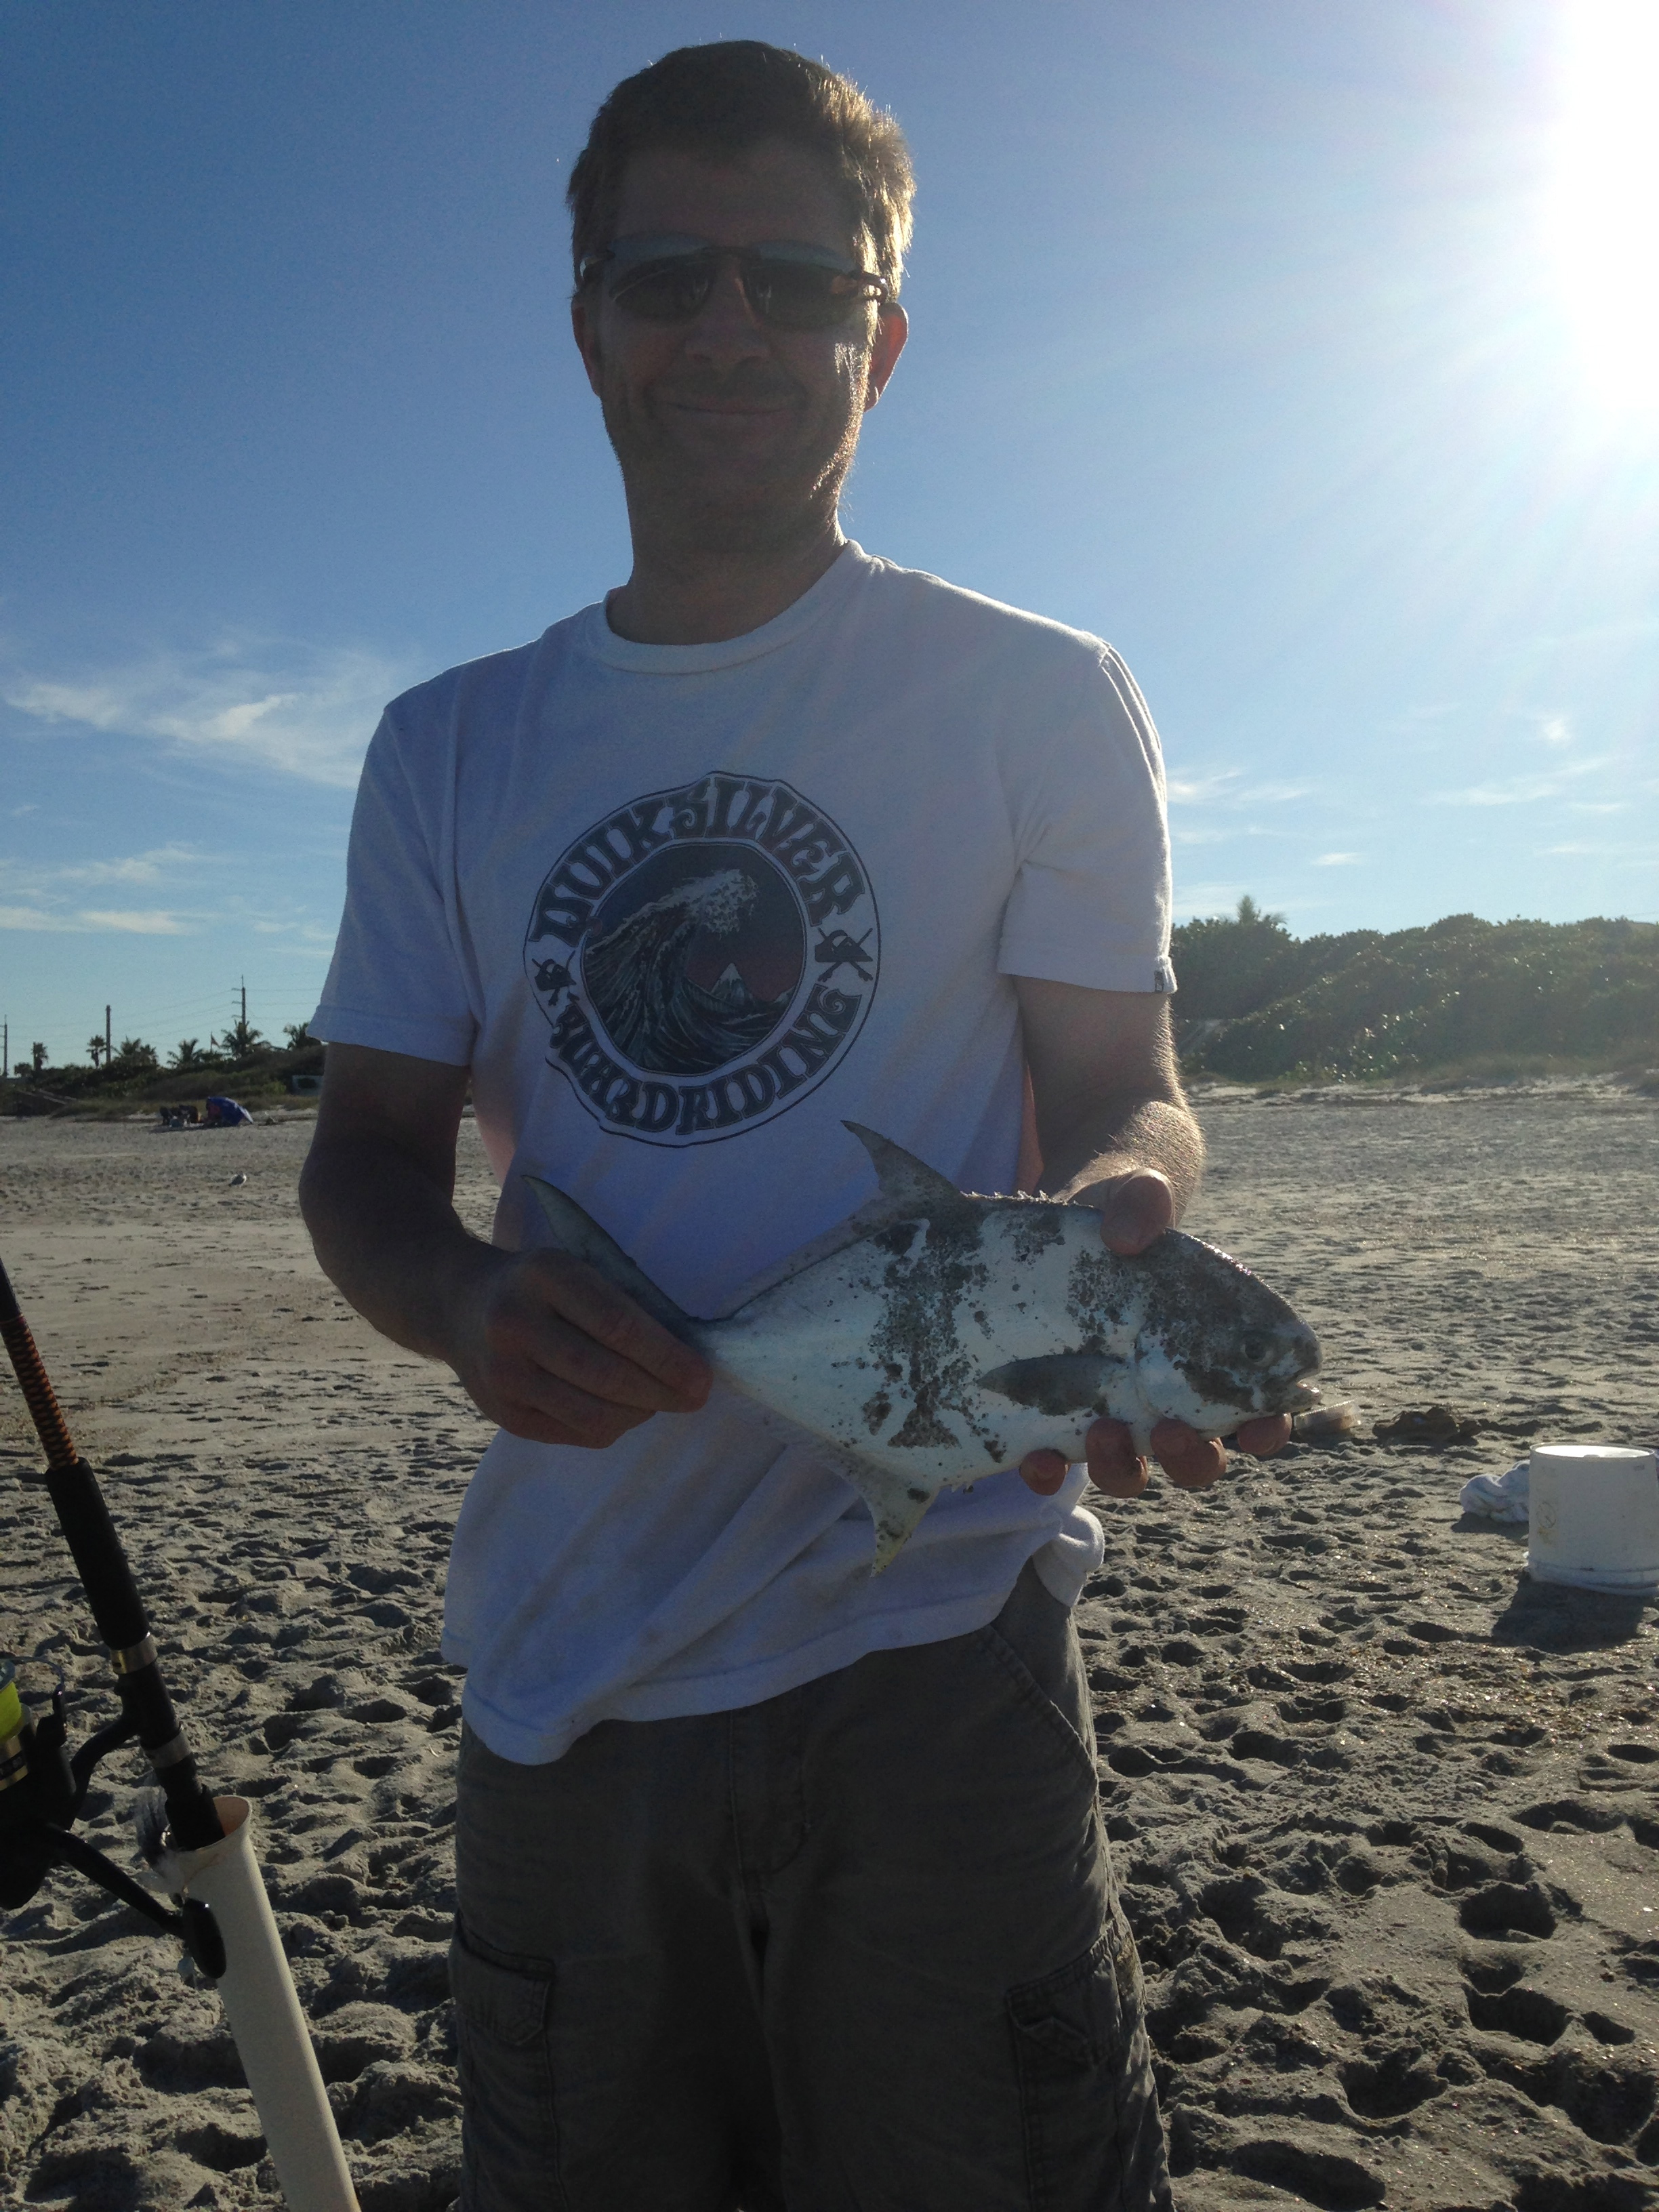 Pompano melbourne beach surf fishing blackdog for Pompano beach fishing report